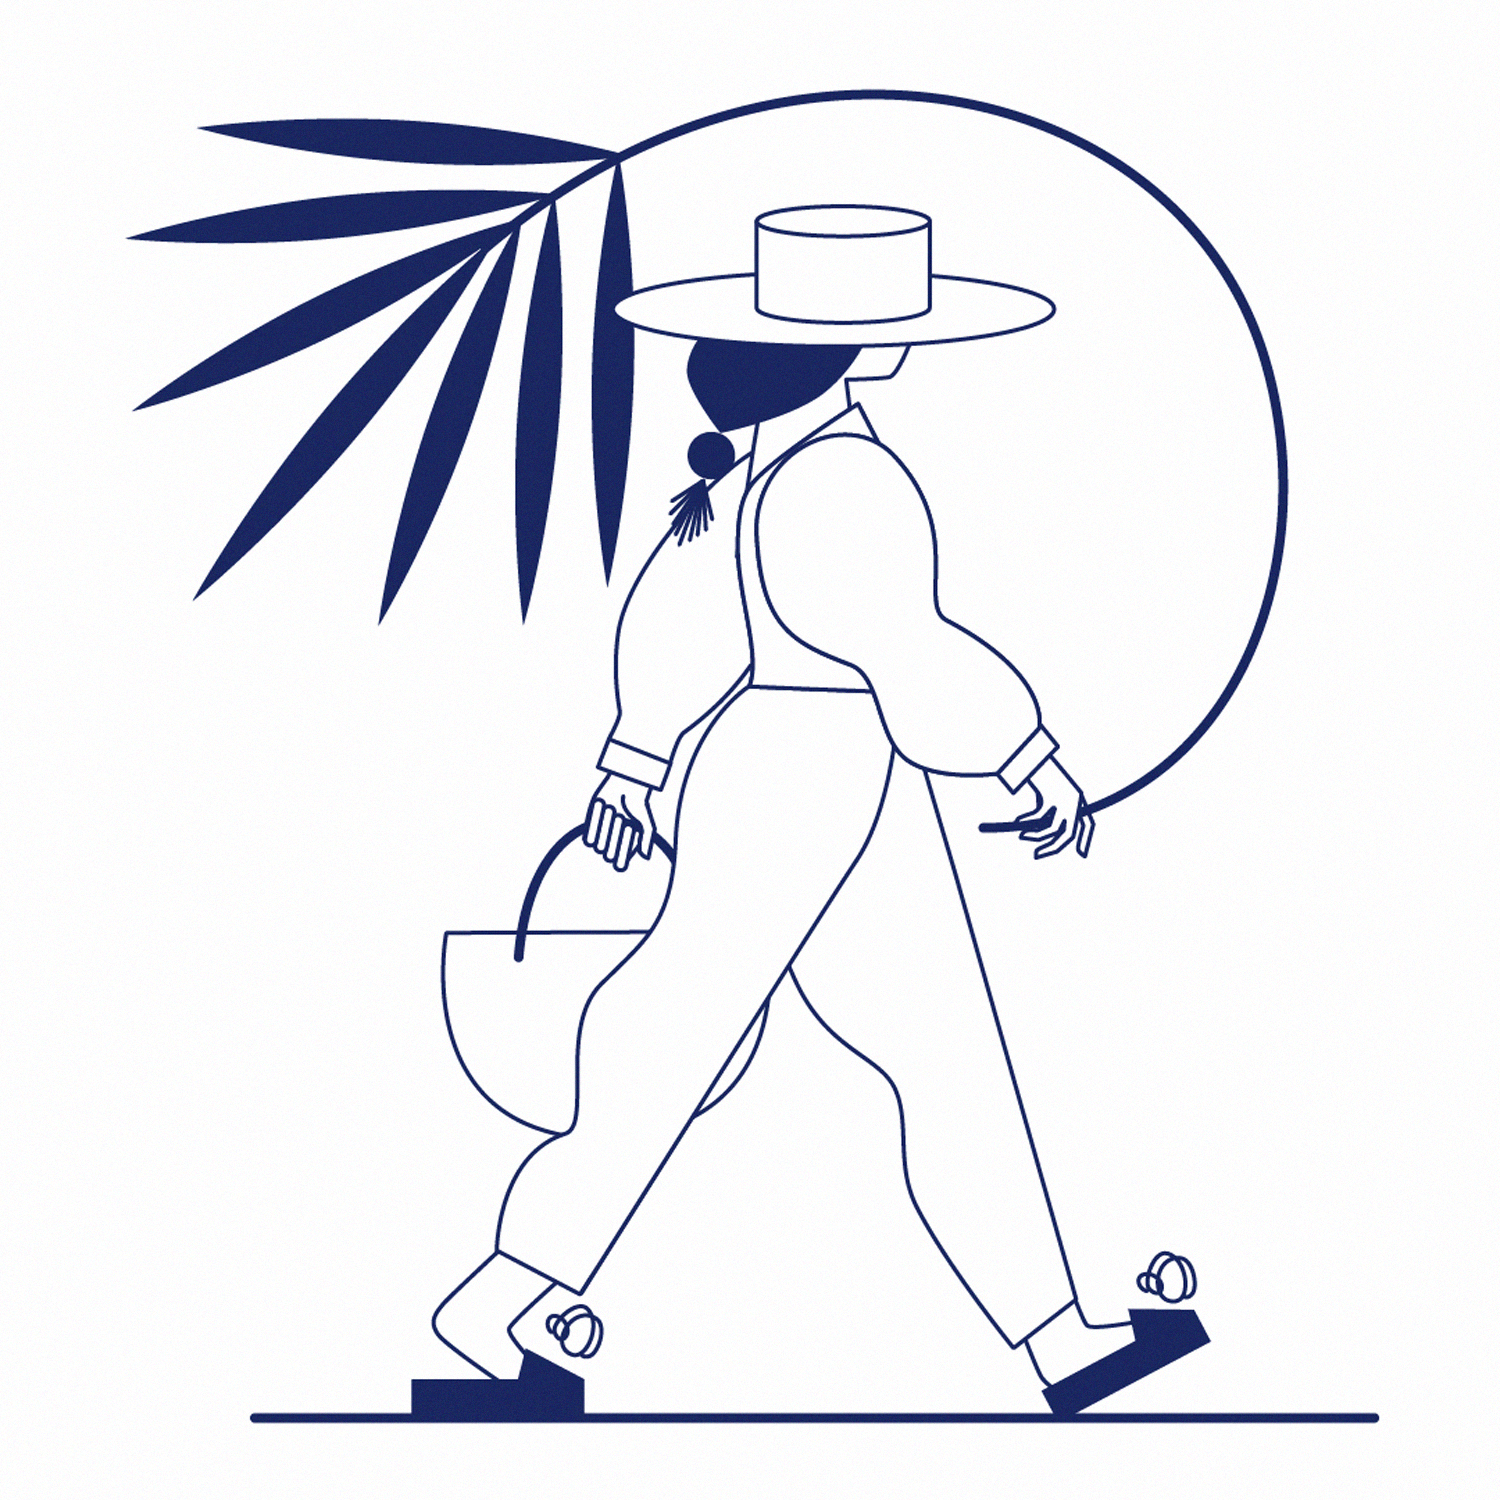 Lineart, line work, image depicting a woman wearing a panama hat and holding a palm tree leaf